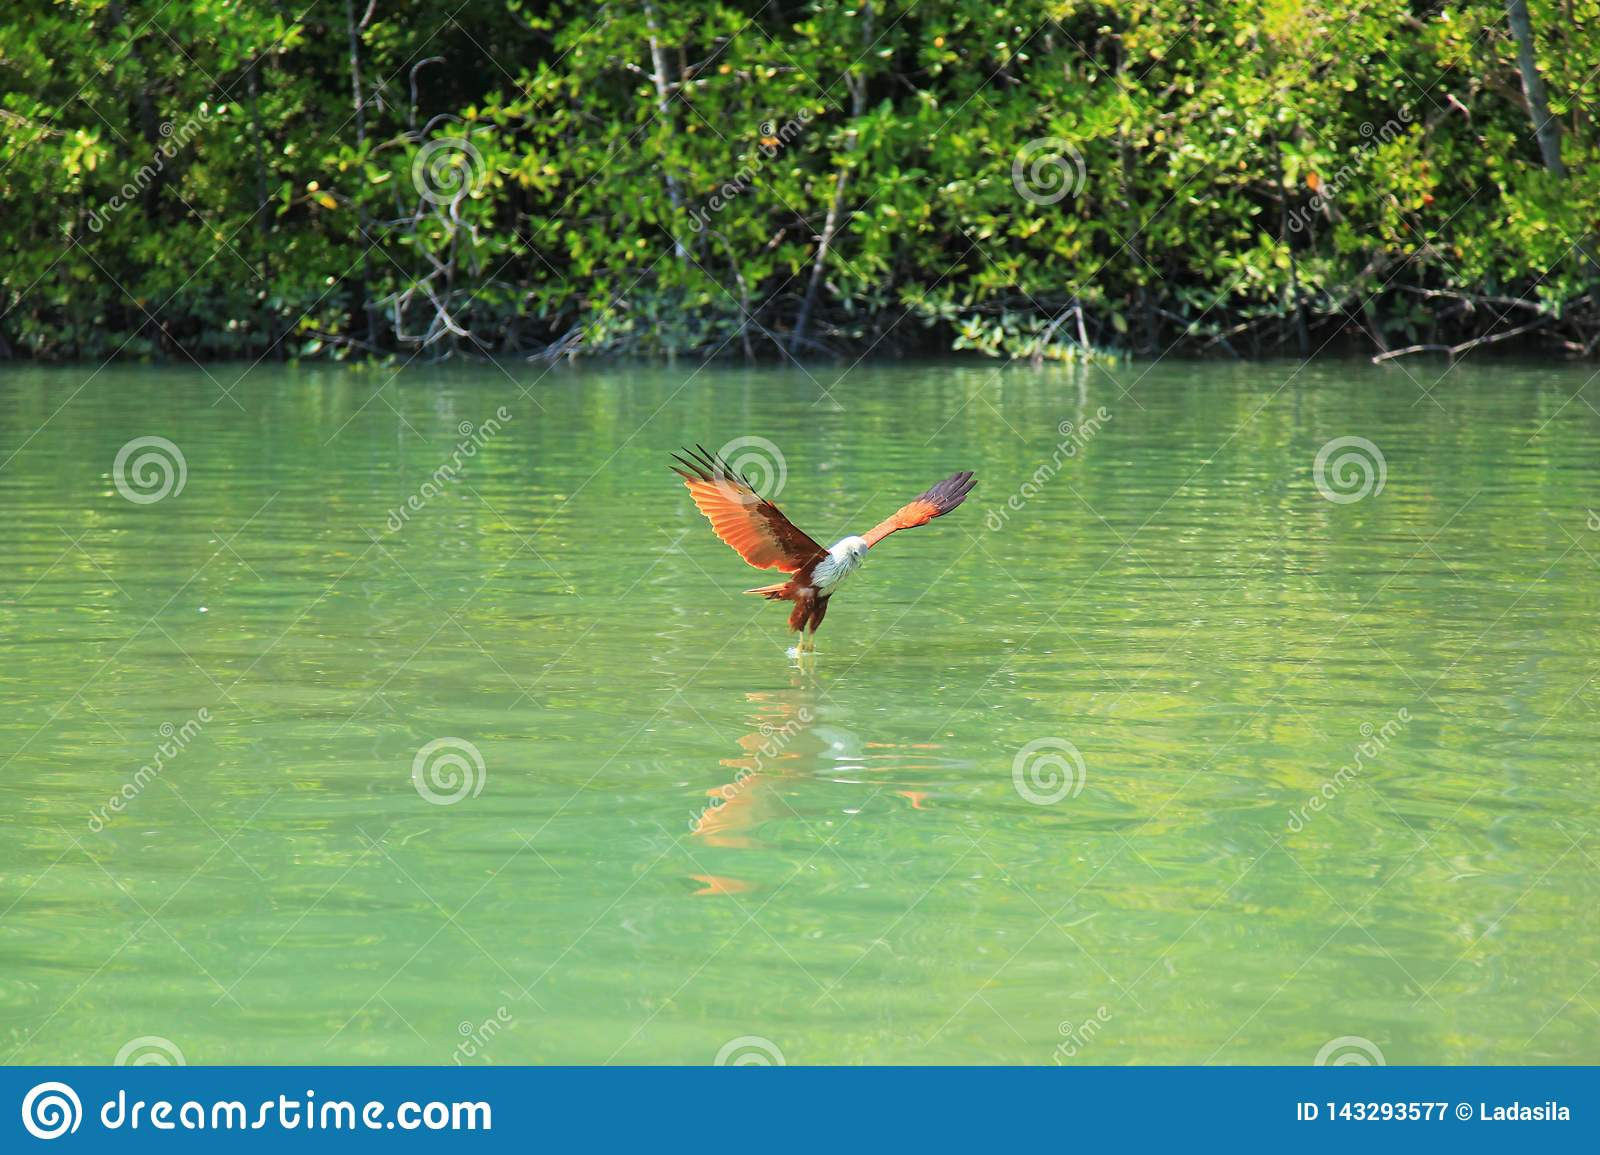 Eagle with white head flies over a green river against background of green trees.